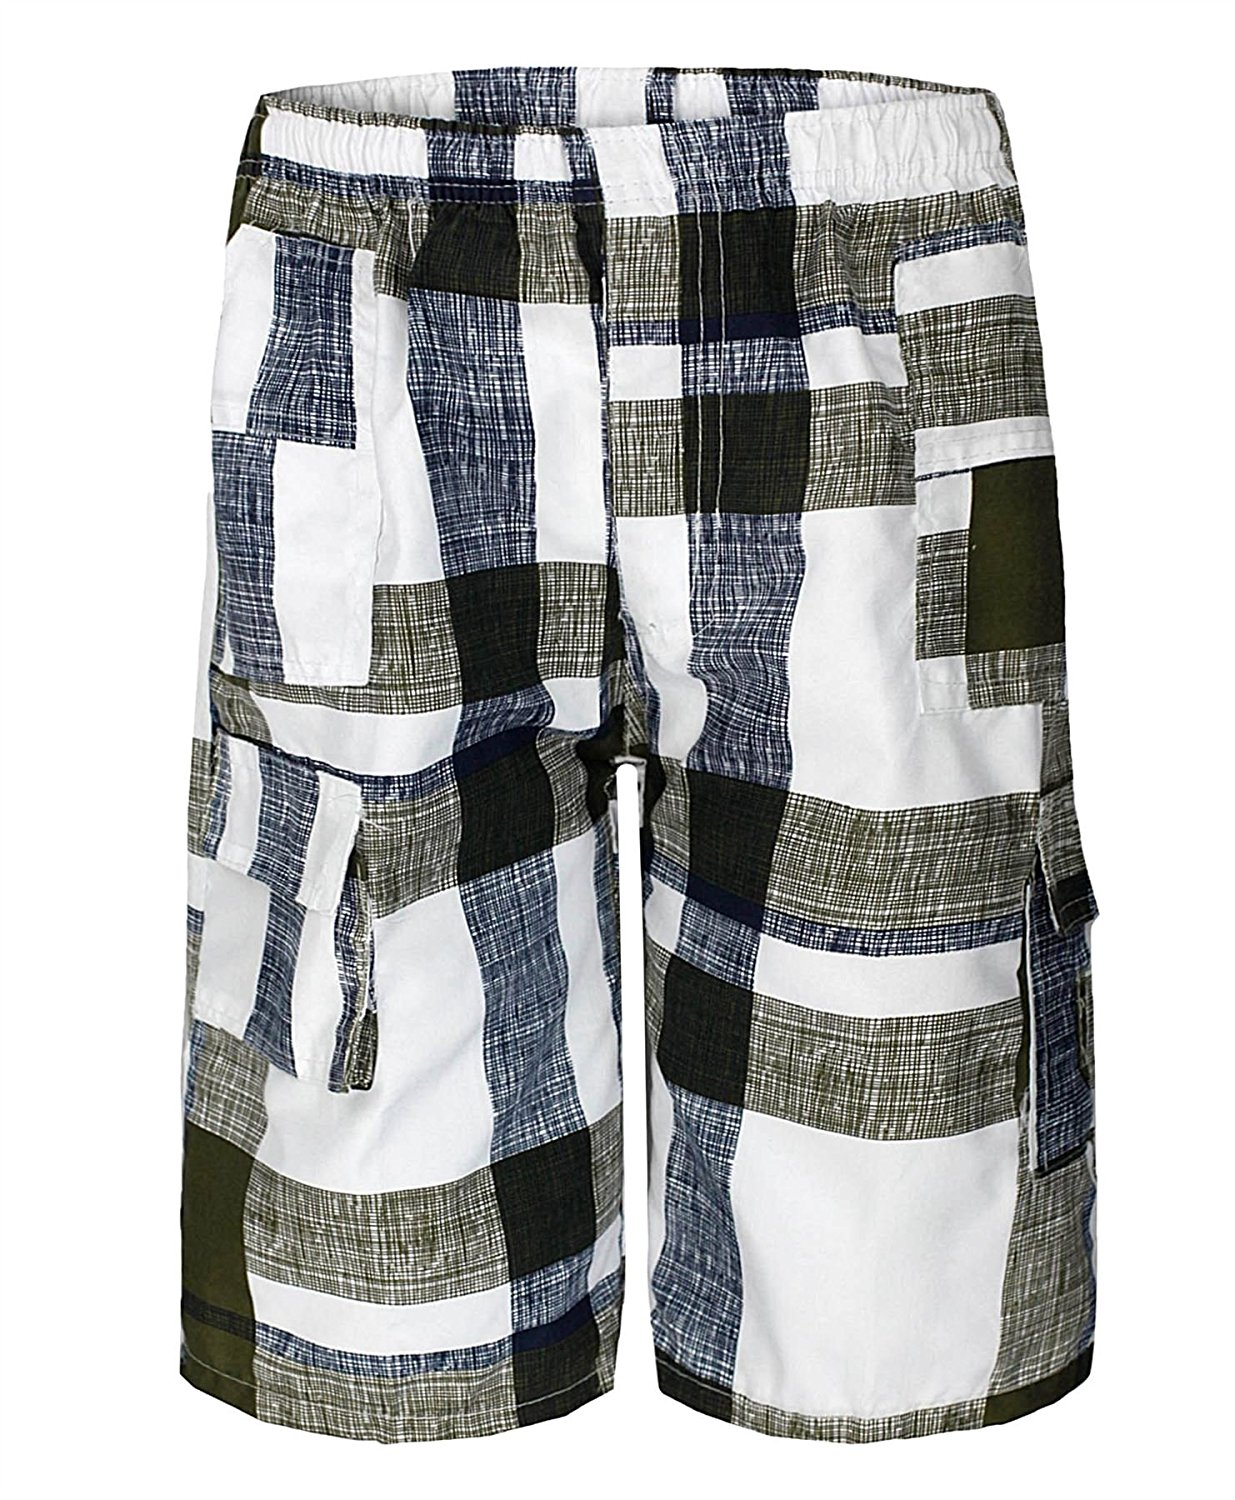 Boys Camouflage Cotton Blend Shorts Multipocket /¾ Length Combat Kids Age 3-14 Years